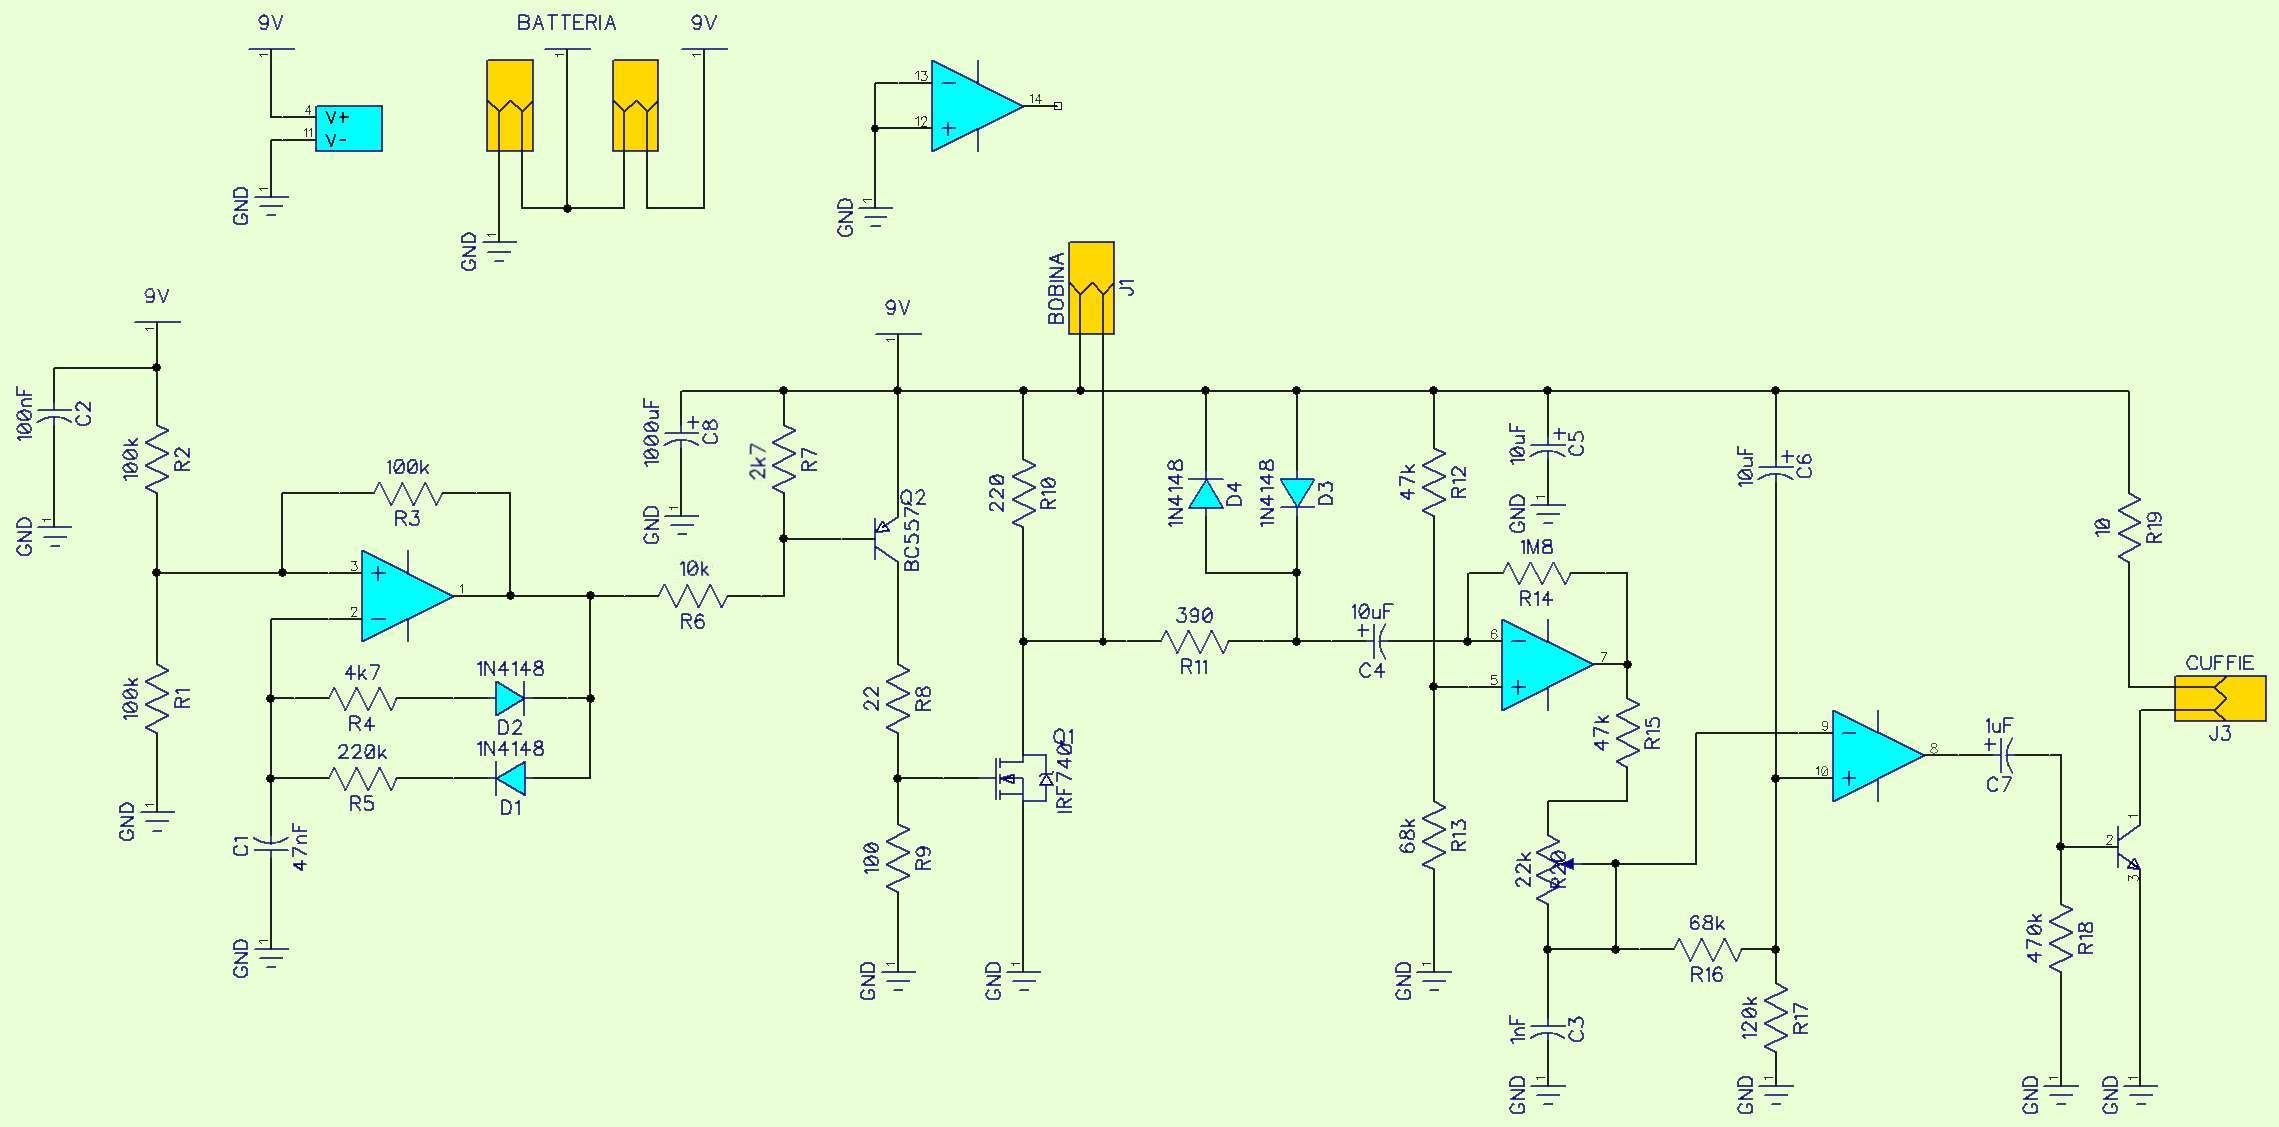 metal simple and powerful detector \u2013 elettroamiciclicking in the diagram expands and it is possible to read all the components with the exception of the operational amps lm324 clearly specified in the